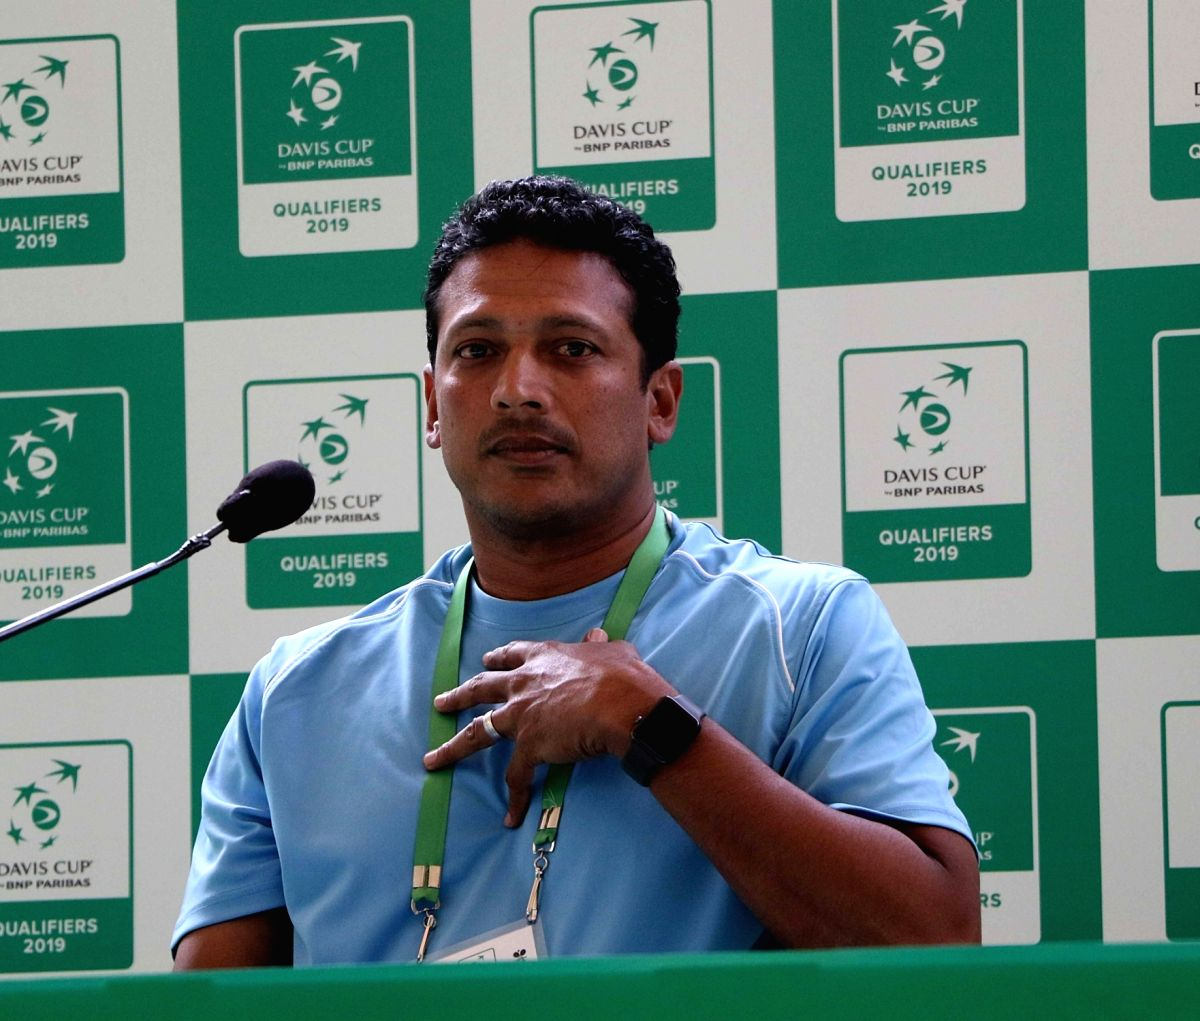 Kolkata: Non- playing captain of the Indian Davis Cup team Mahesh Bhupathi addresses a press conference after a practice session ahead of the Davis Cup World Group qualifier against Italy on February 1-2, in Kolkata on Jan 30, 2019.